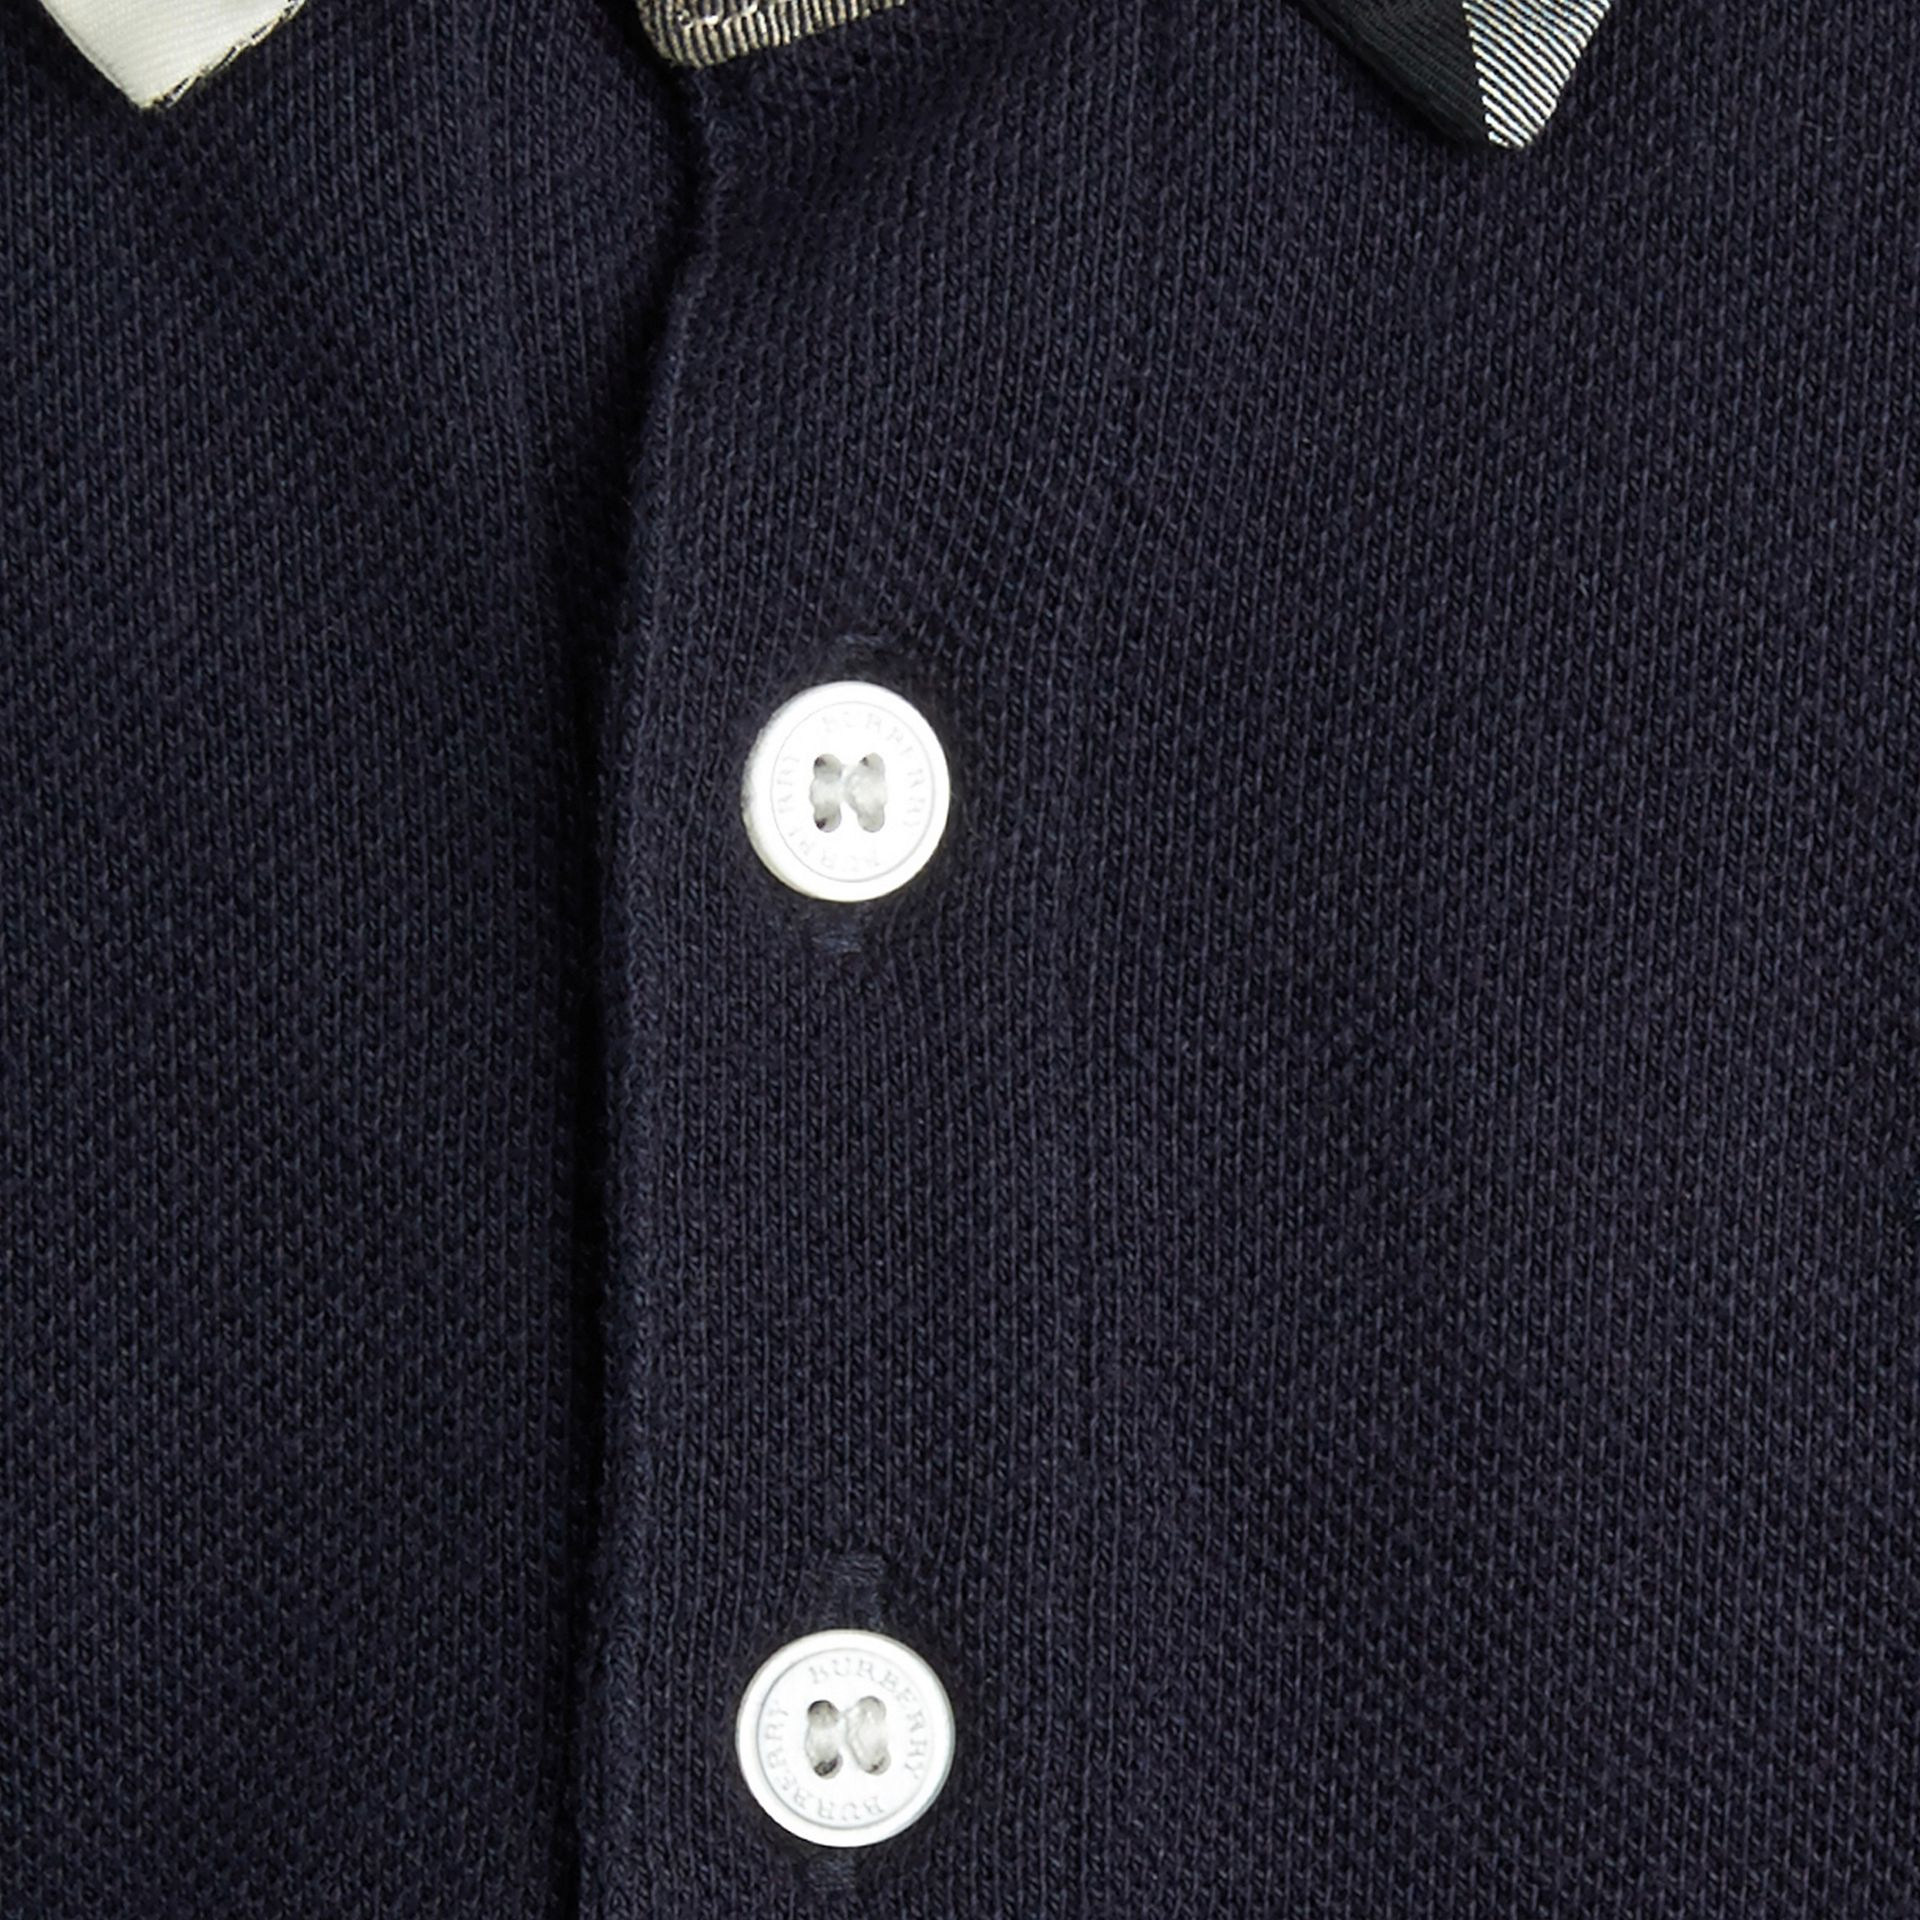 Marine véritable Polo avec col en check Marine Véritable - photo de la galerie 2